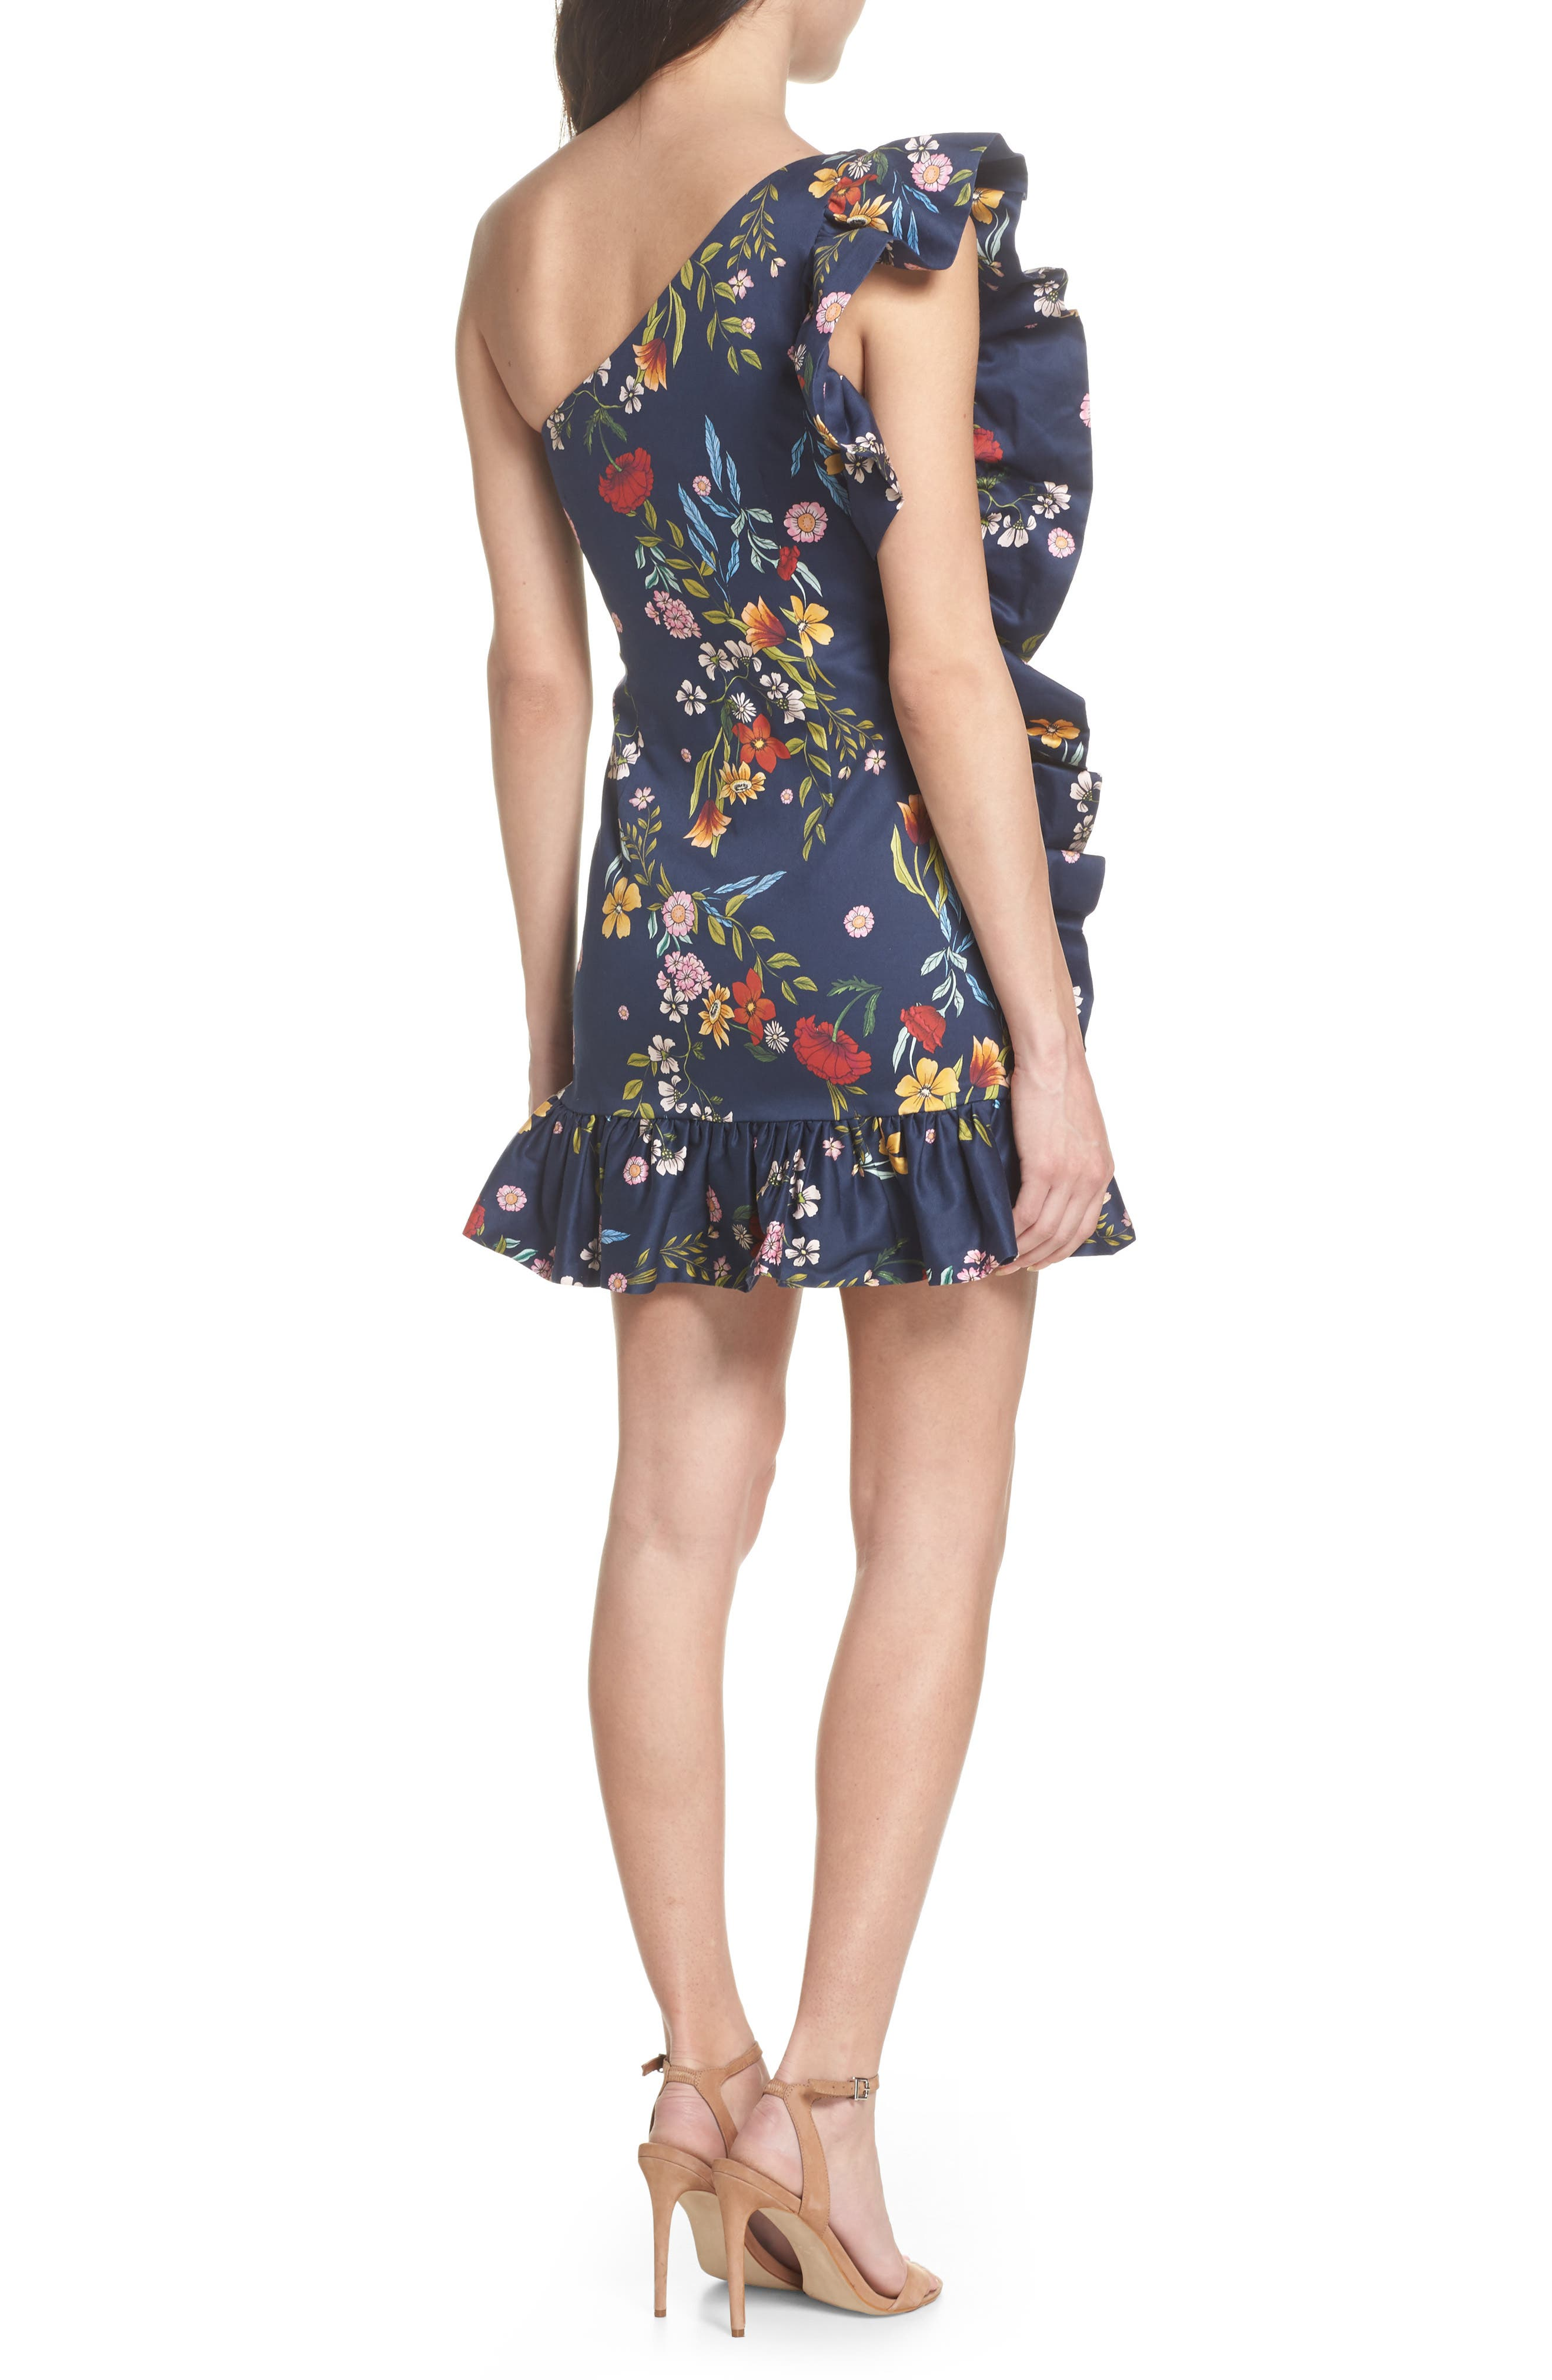 C/MEO No Matter One-Shoulder Ruffle Minidress,                             Alternate thumbnail 2, color,                             NAVY FLORAL